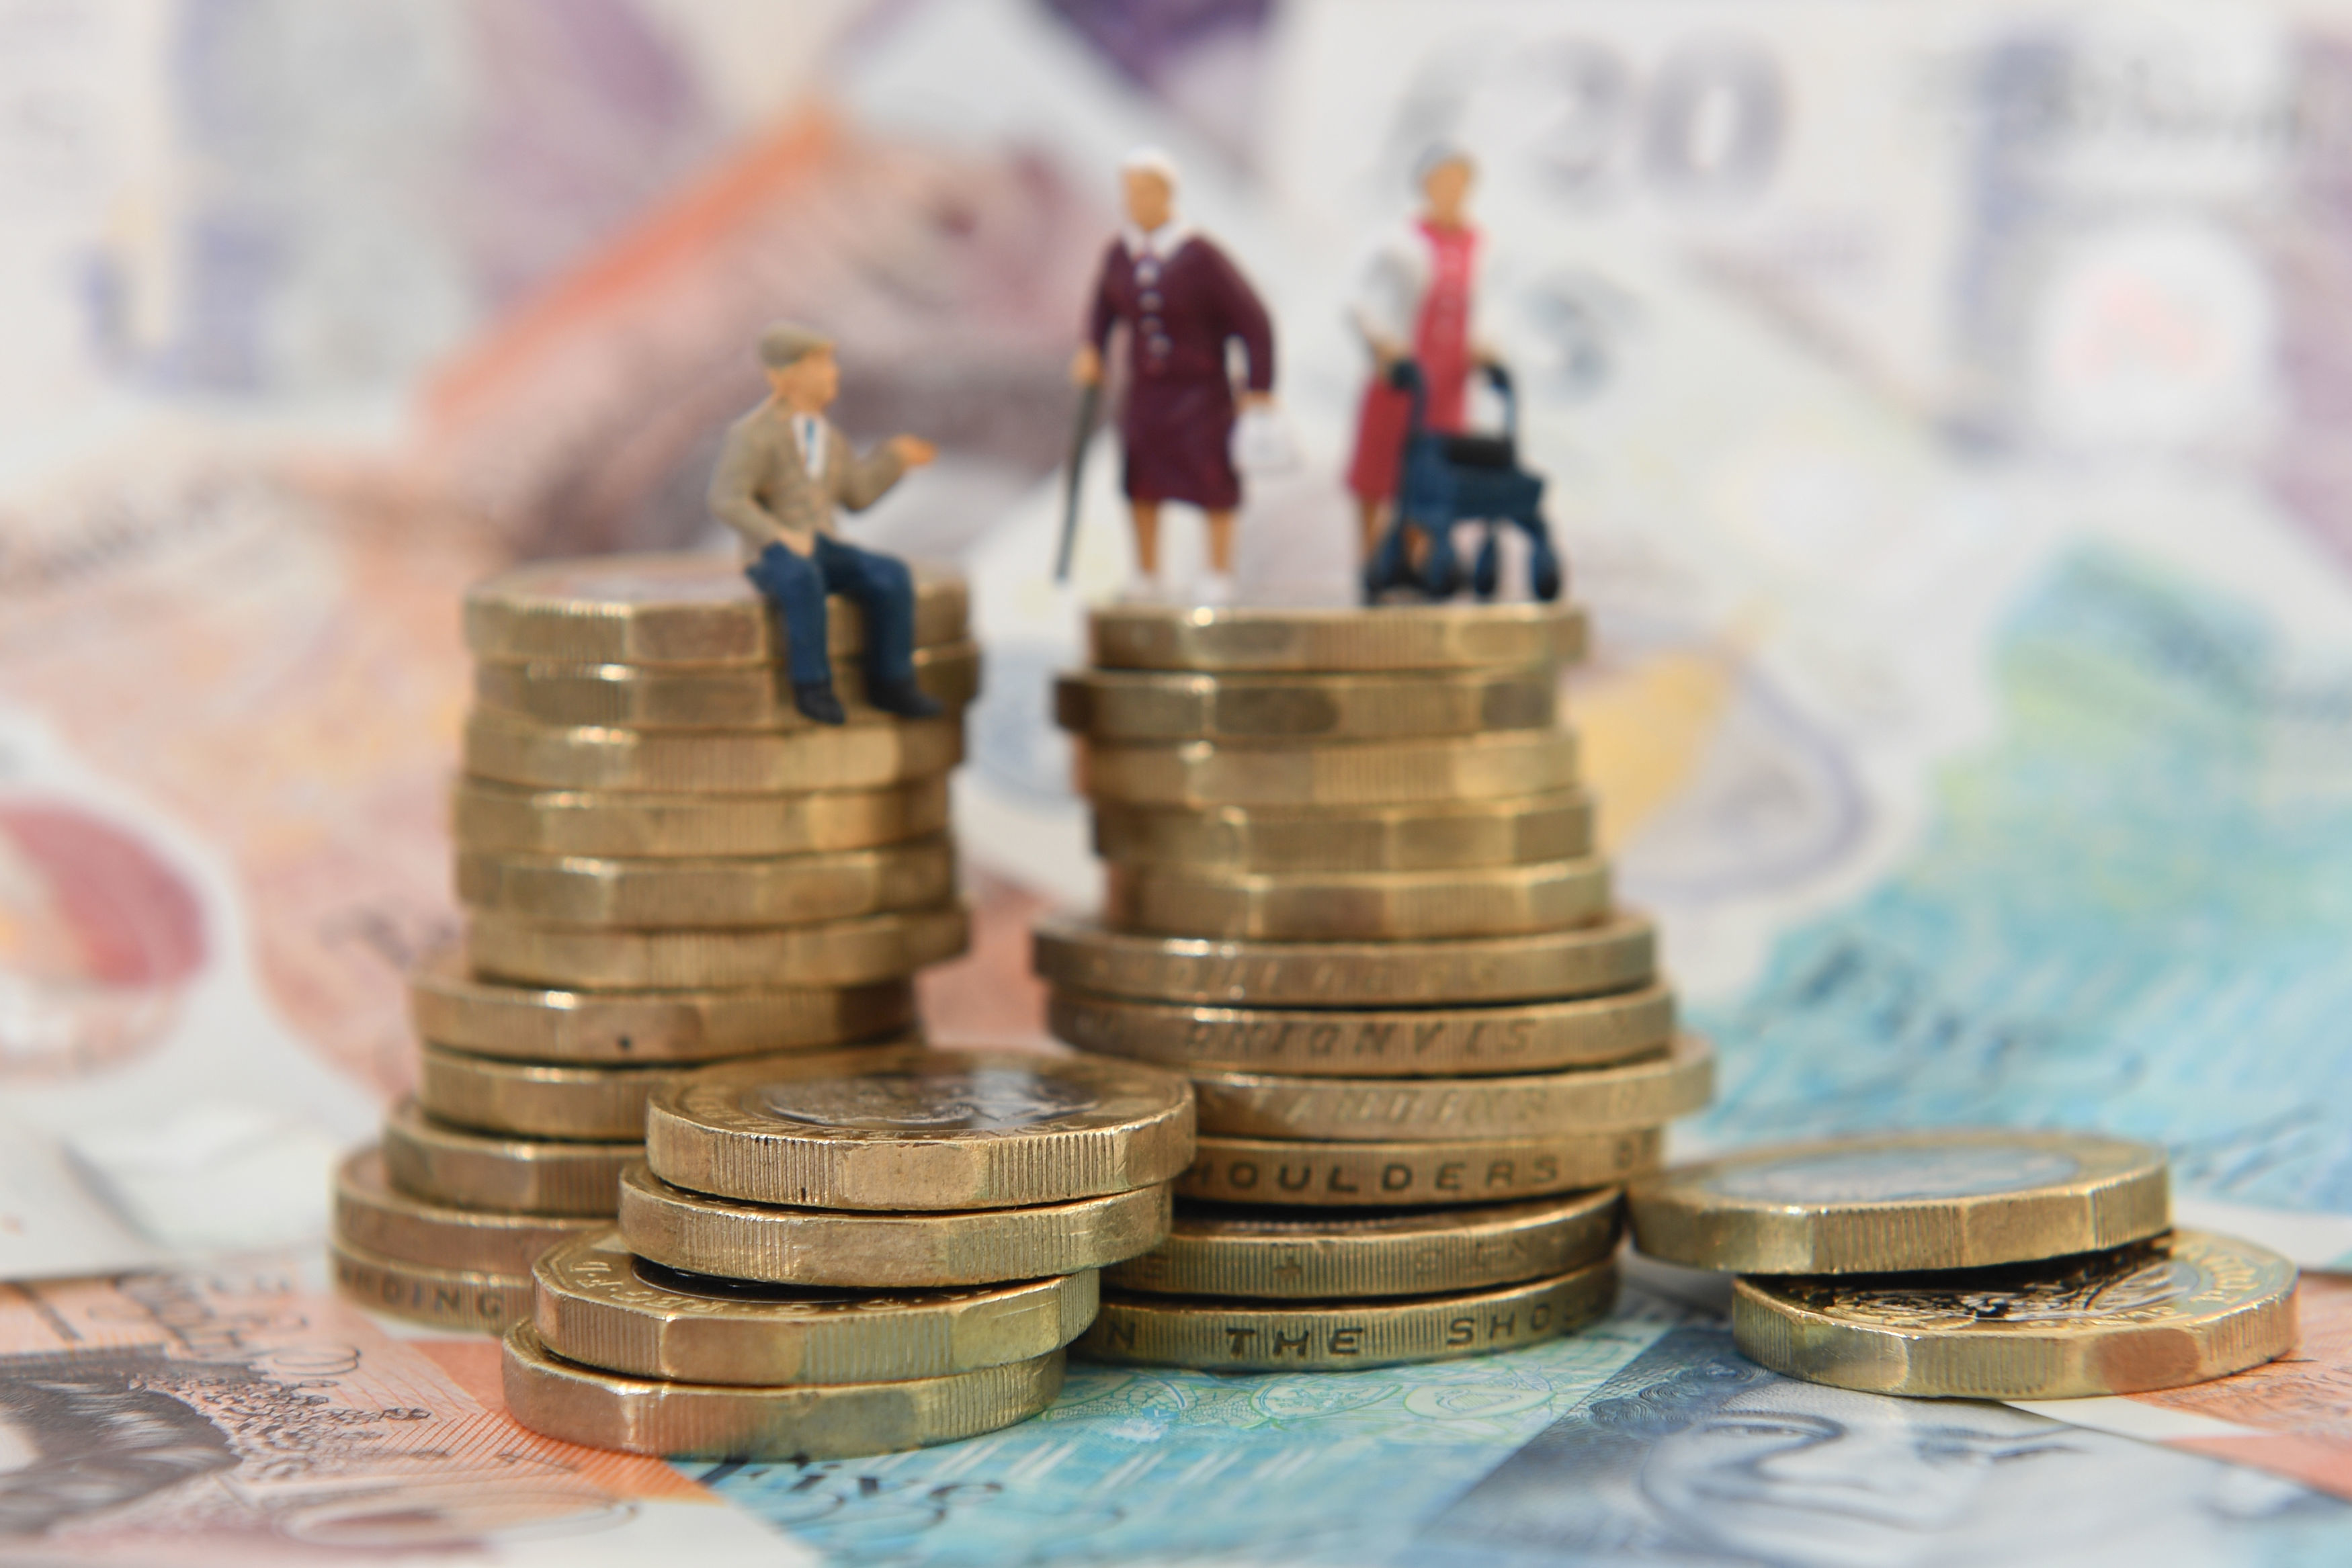 Retirees will get up to £230 a year extra in their state pension from April next year, the government has confirmed